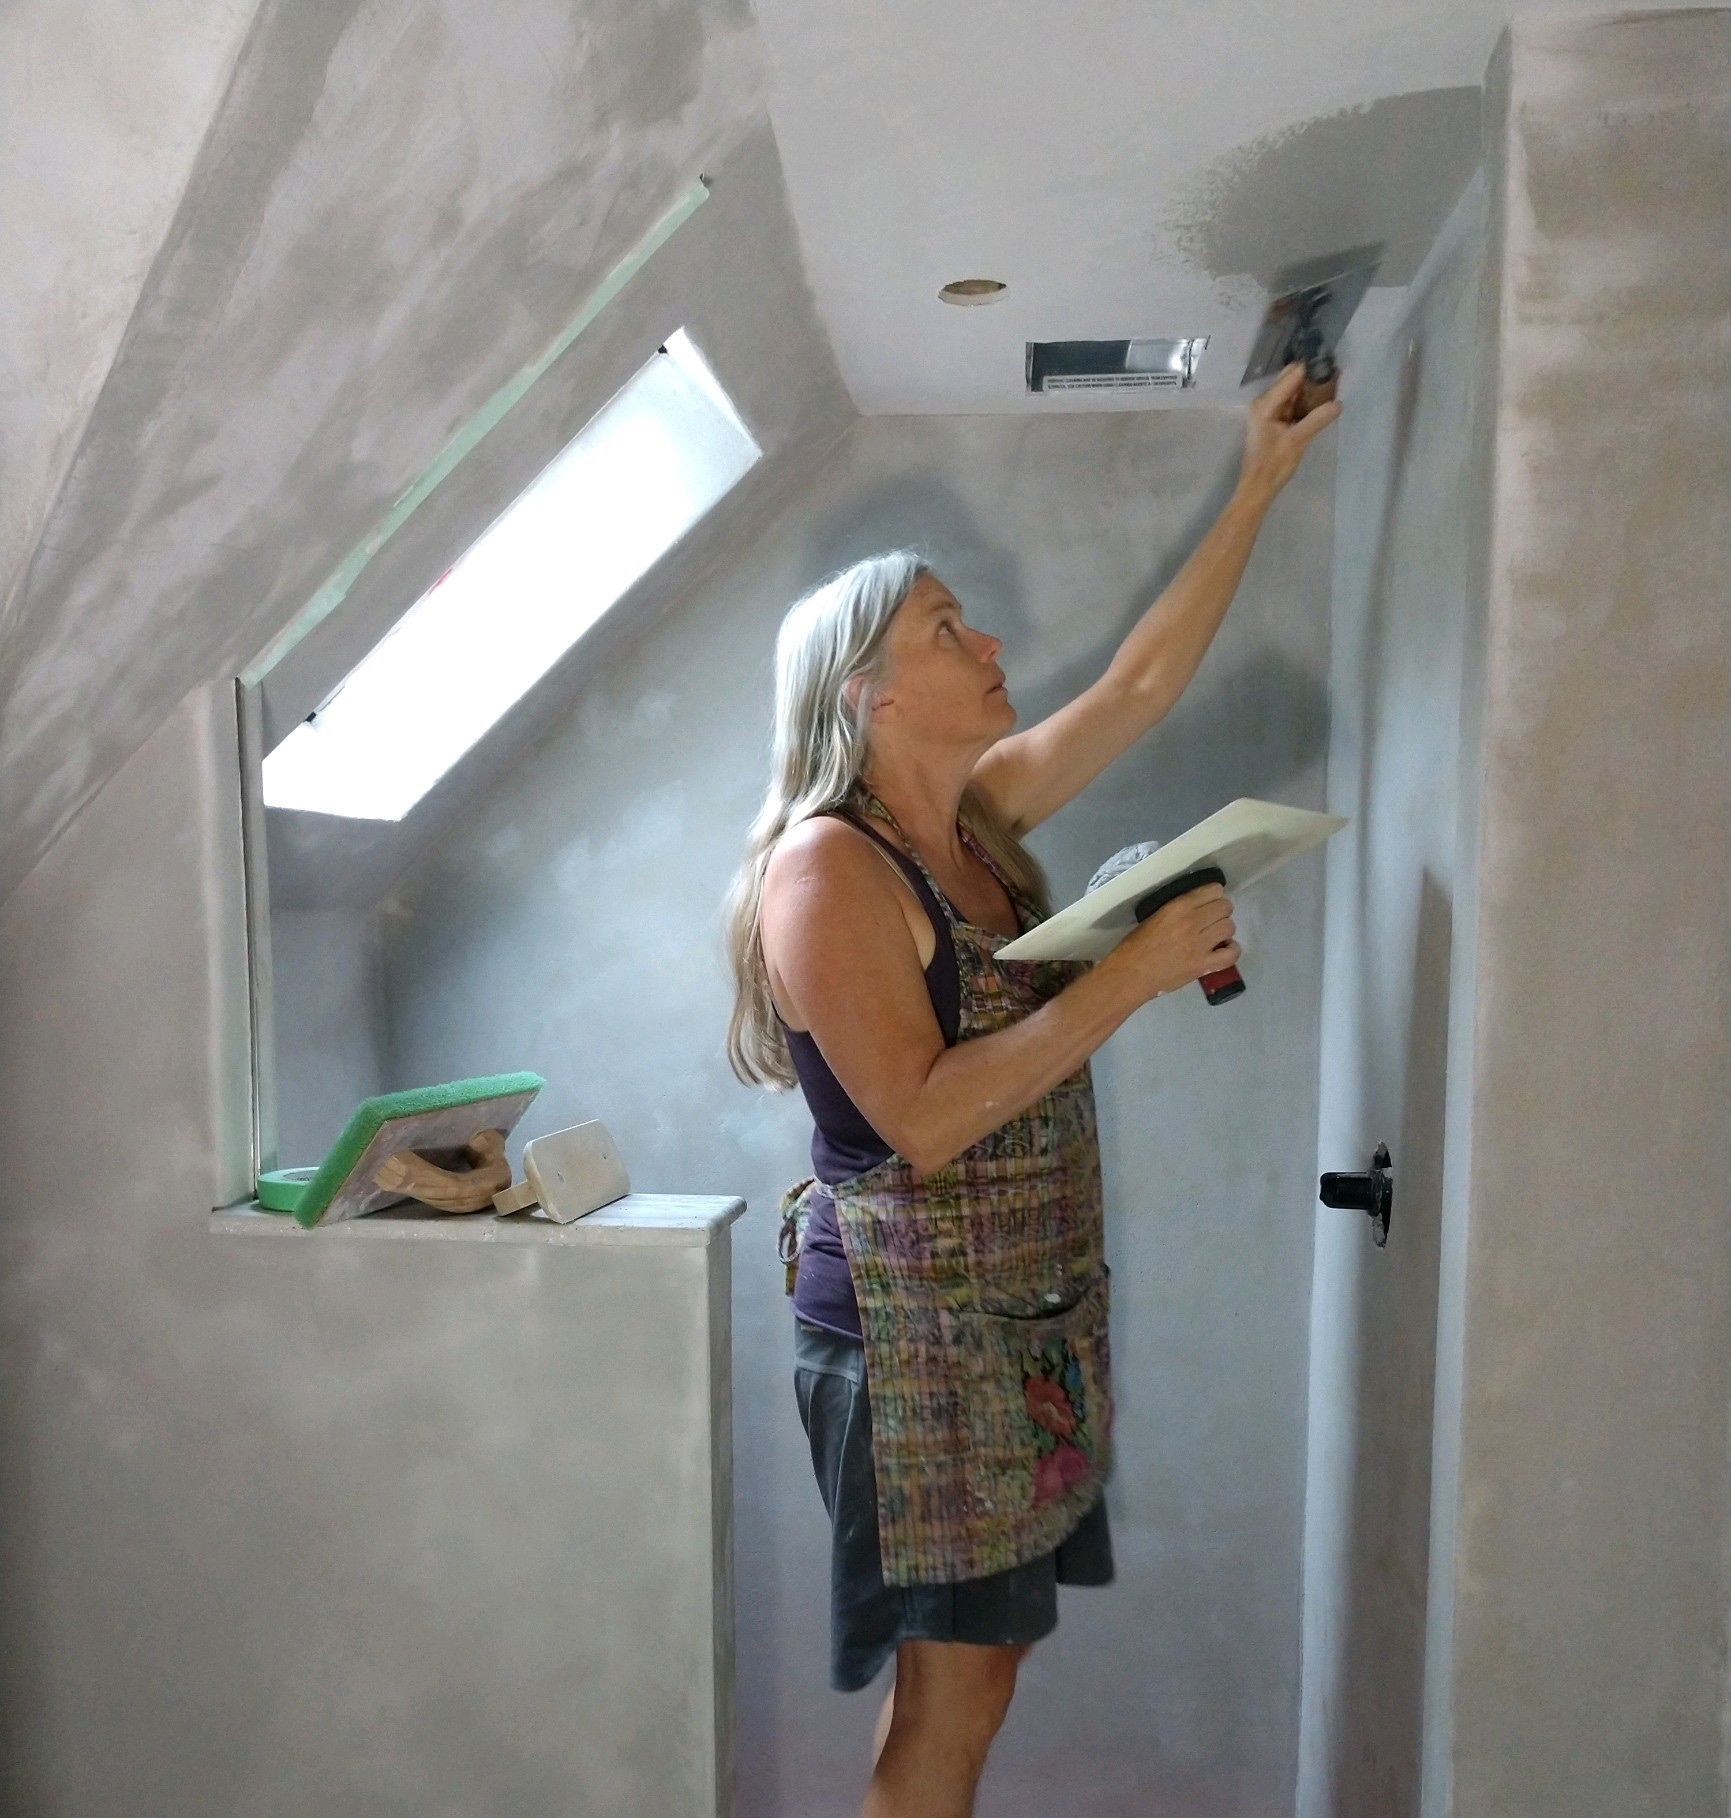 Liz Johndrow, Owner - Liz has been plastering alongside other natural building skills for 15 years. The last eight years she has split her time with teaching skills in rural communities in Central America and when in the states she is plastering. You can also view what keeps her busy the rest of the time here www.terracollaborative.org